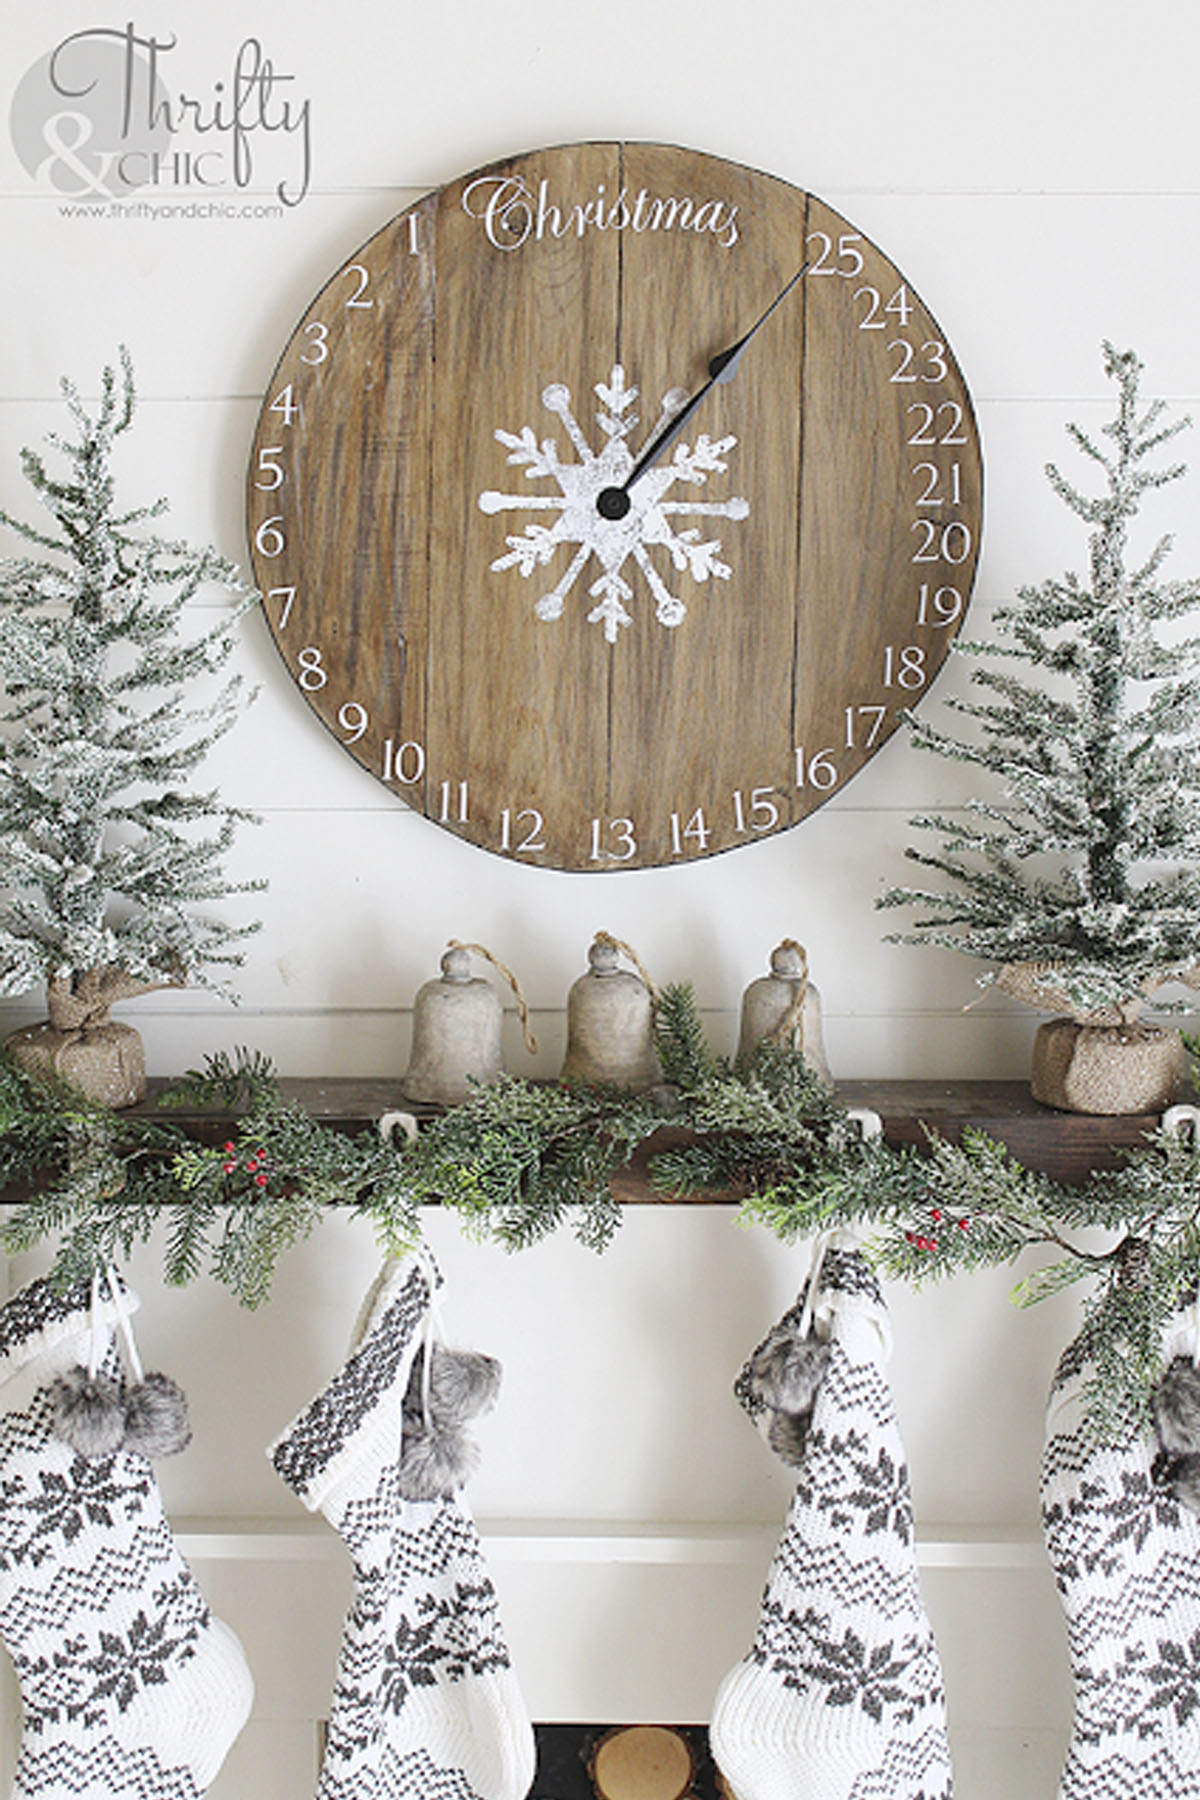 43 Easy Diy Christmas Decorations Homemade Ideas For